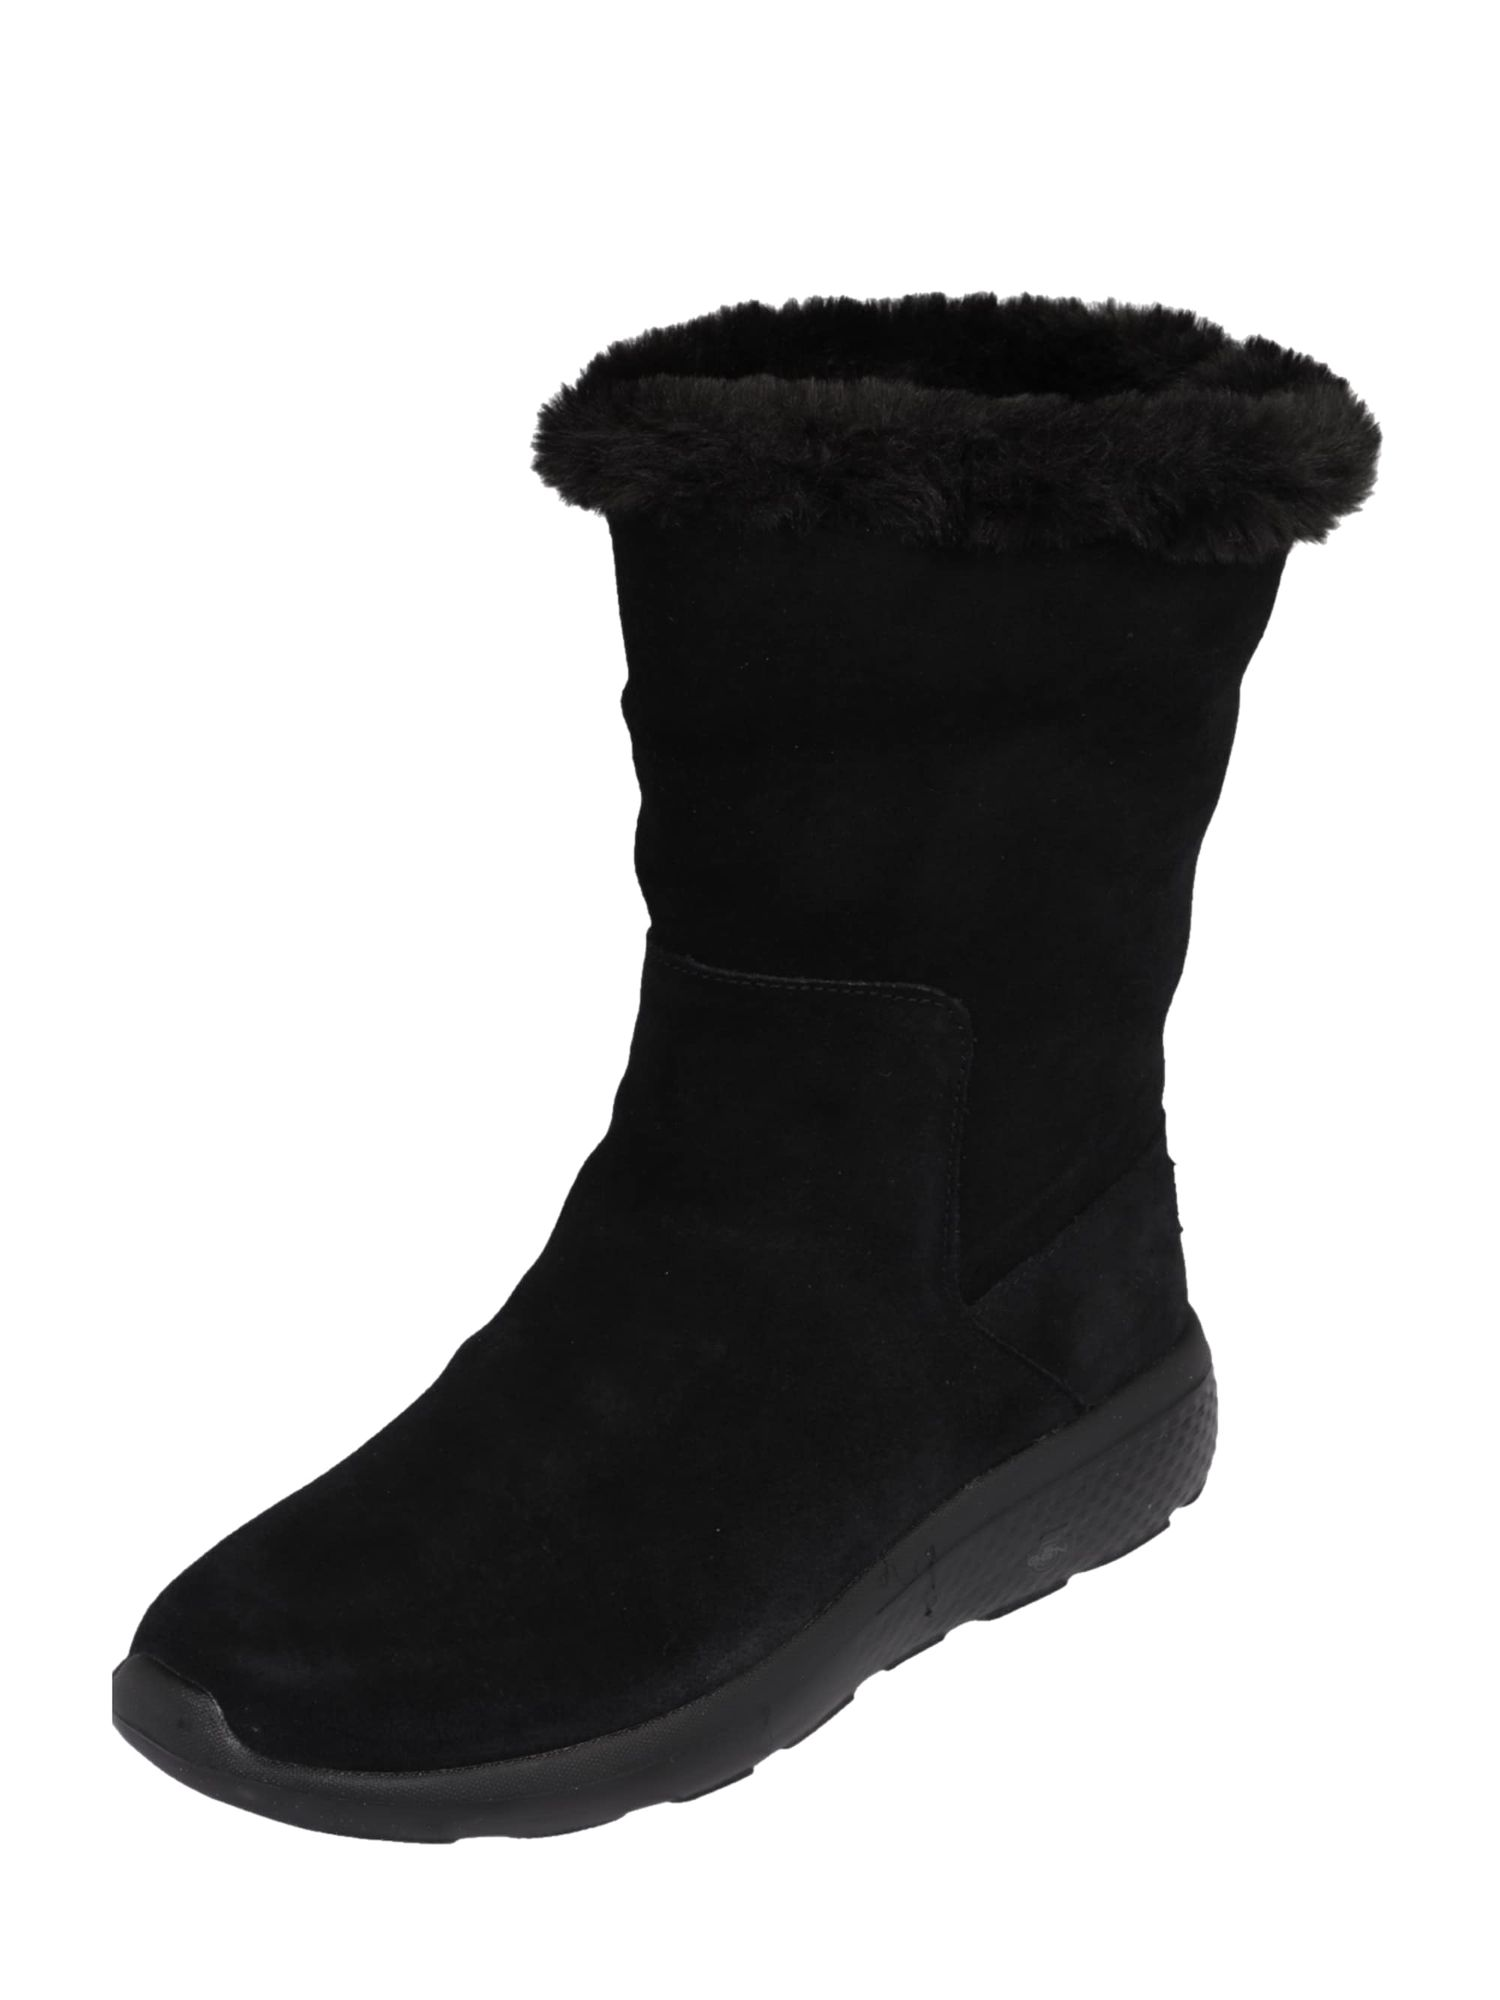 Winterstiefel ´On the go city 2´